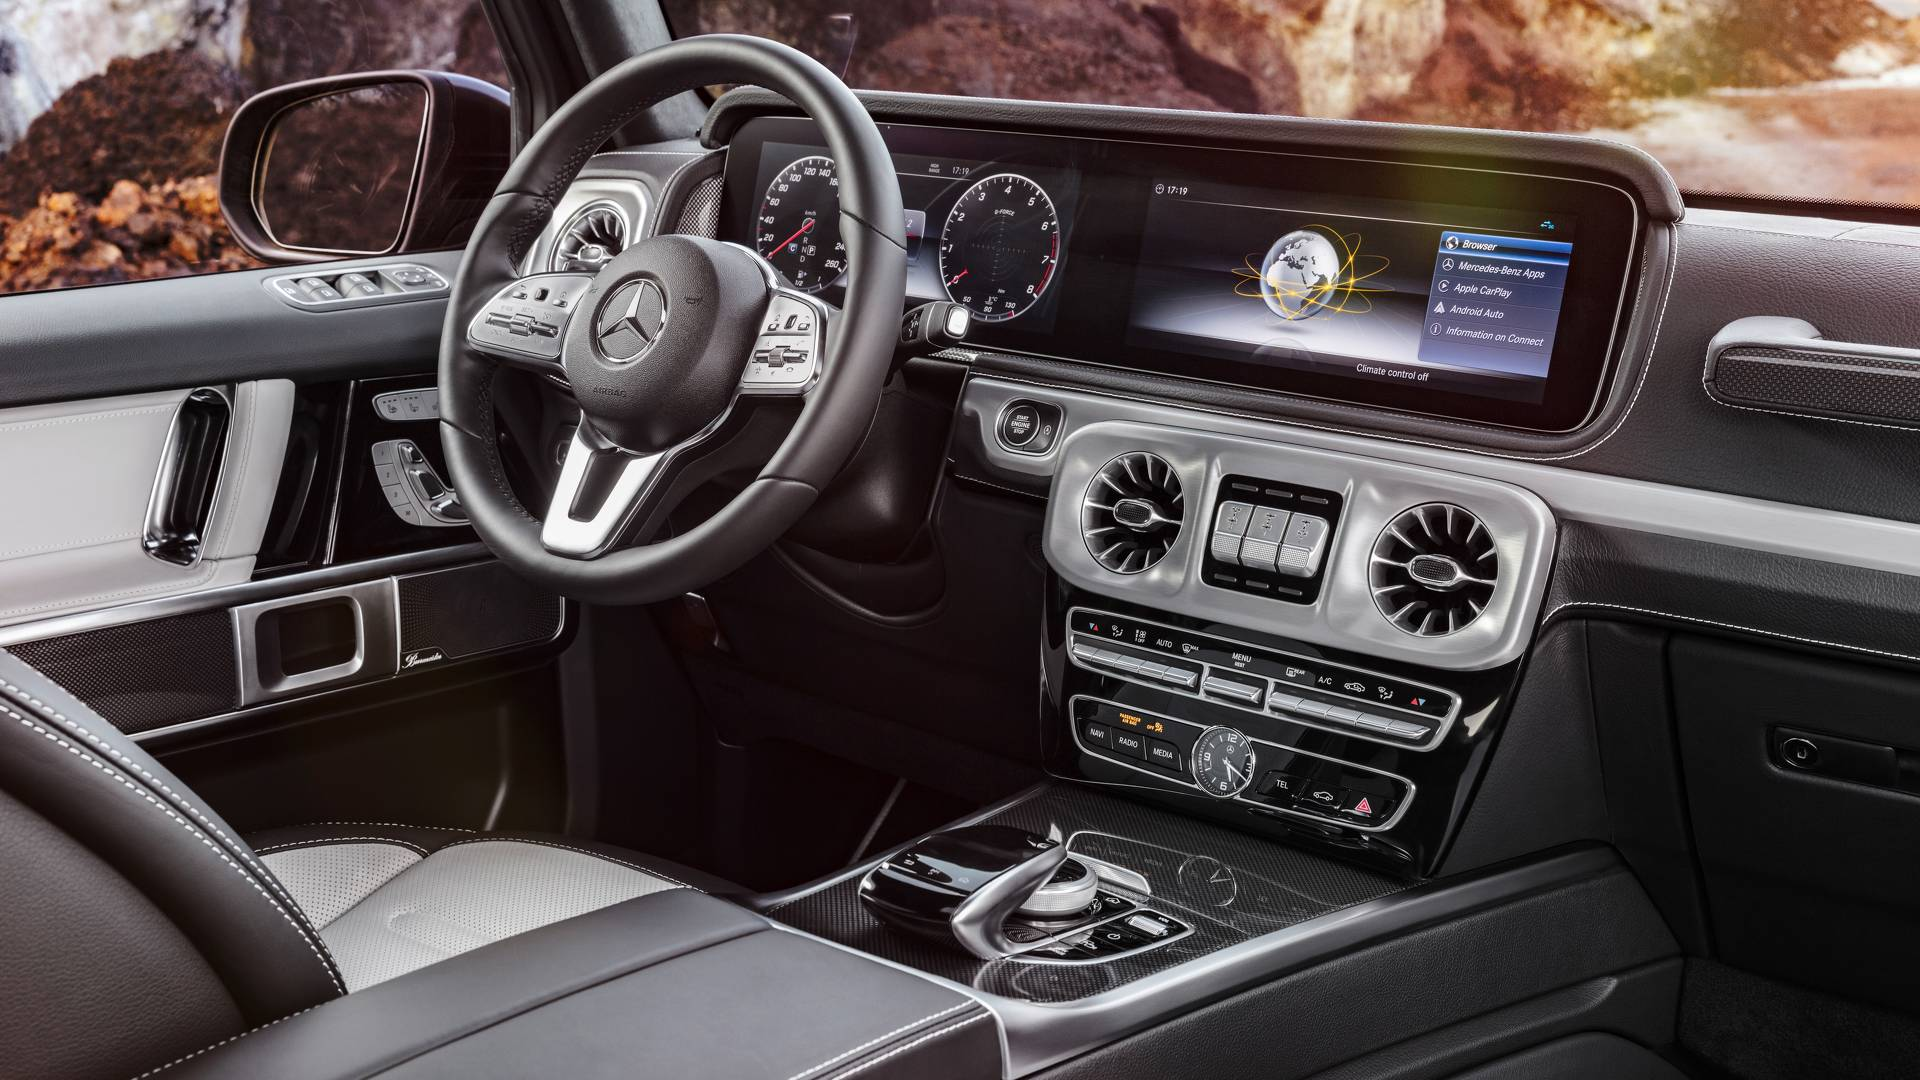 2018 Mercedes G Class interior first look Old inside out